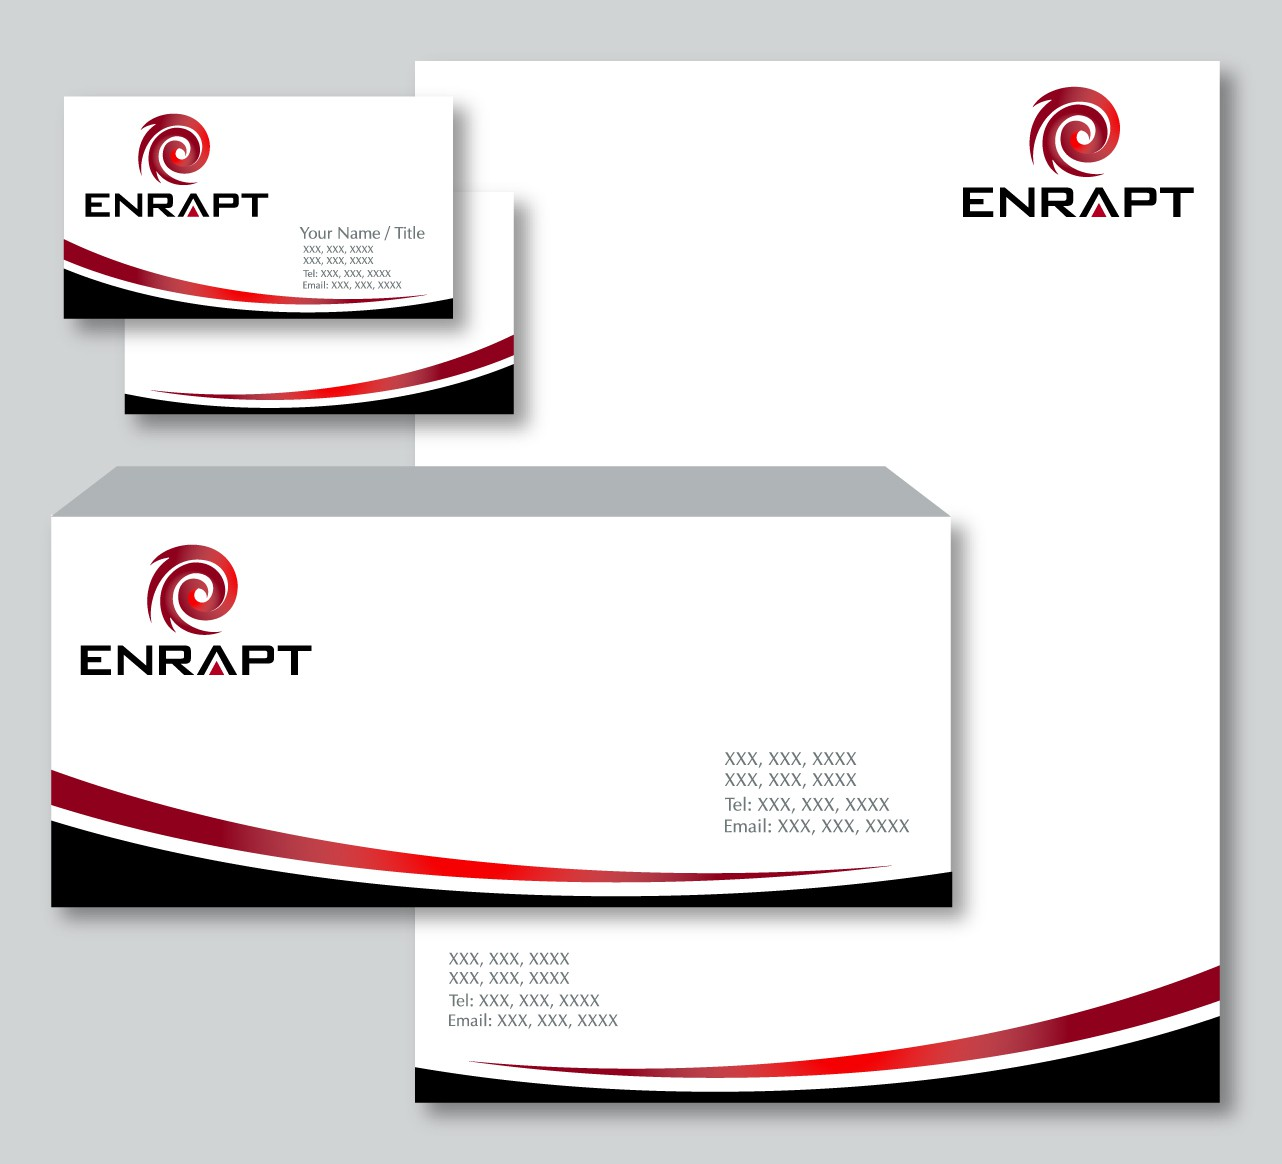 Enrapt Logo Required